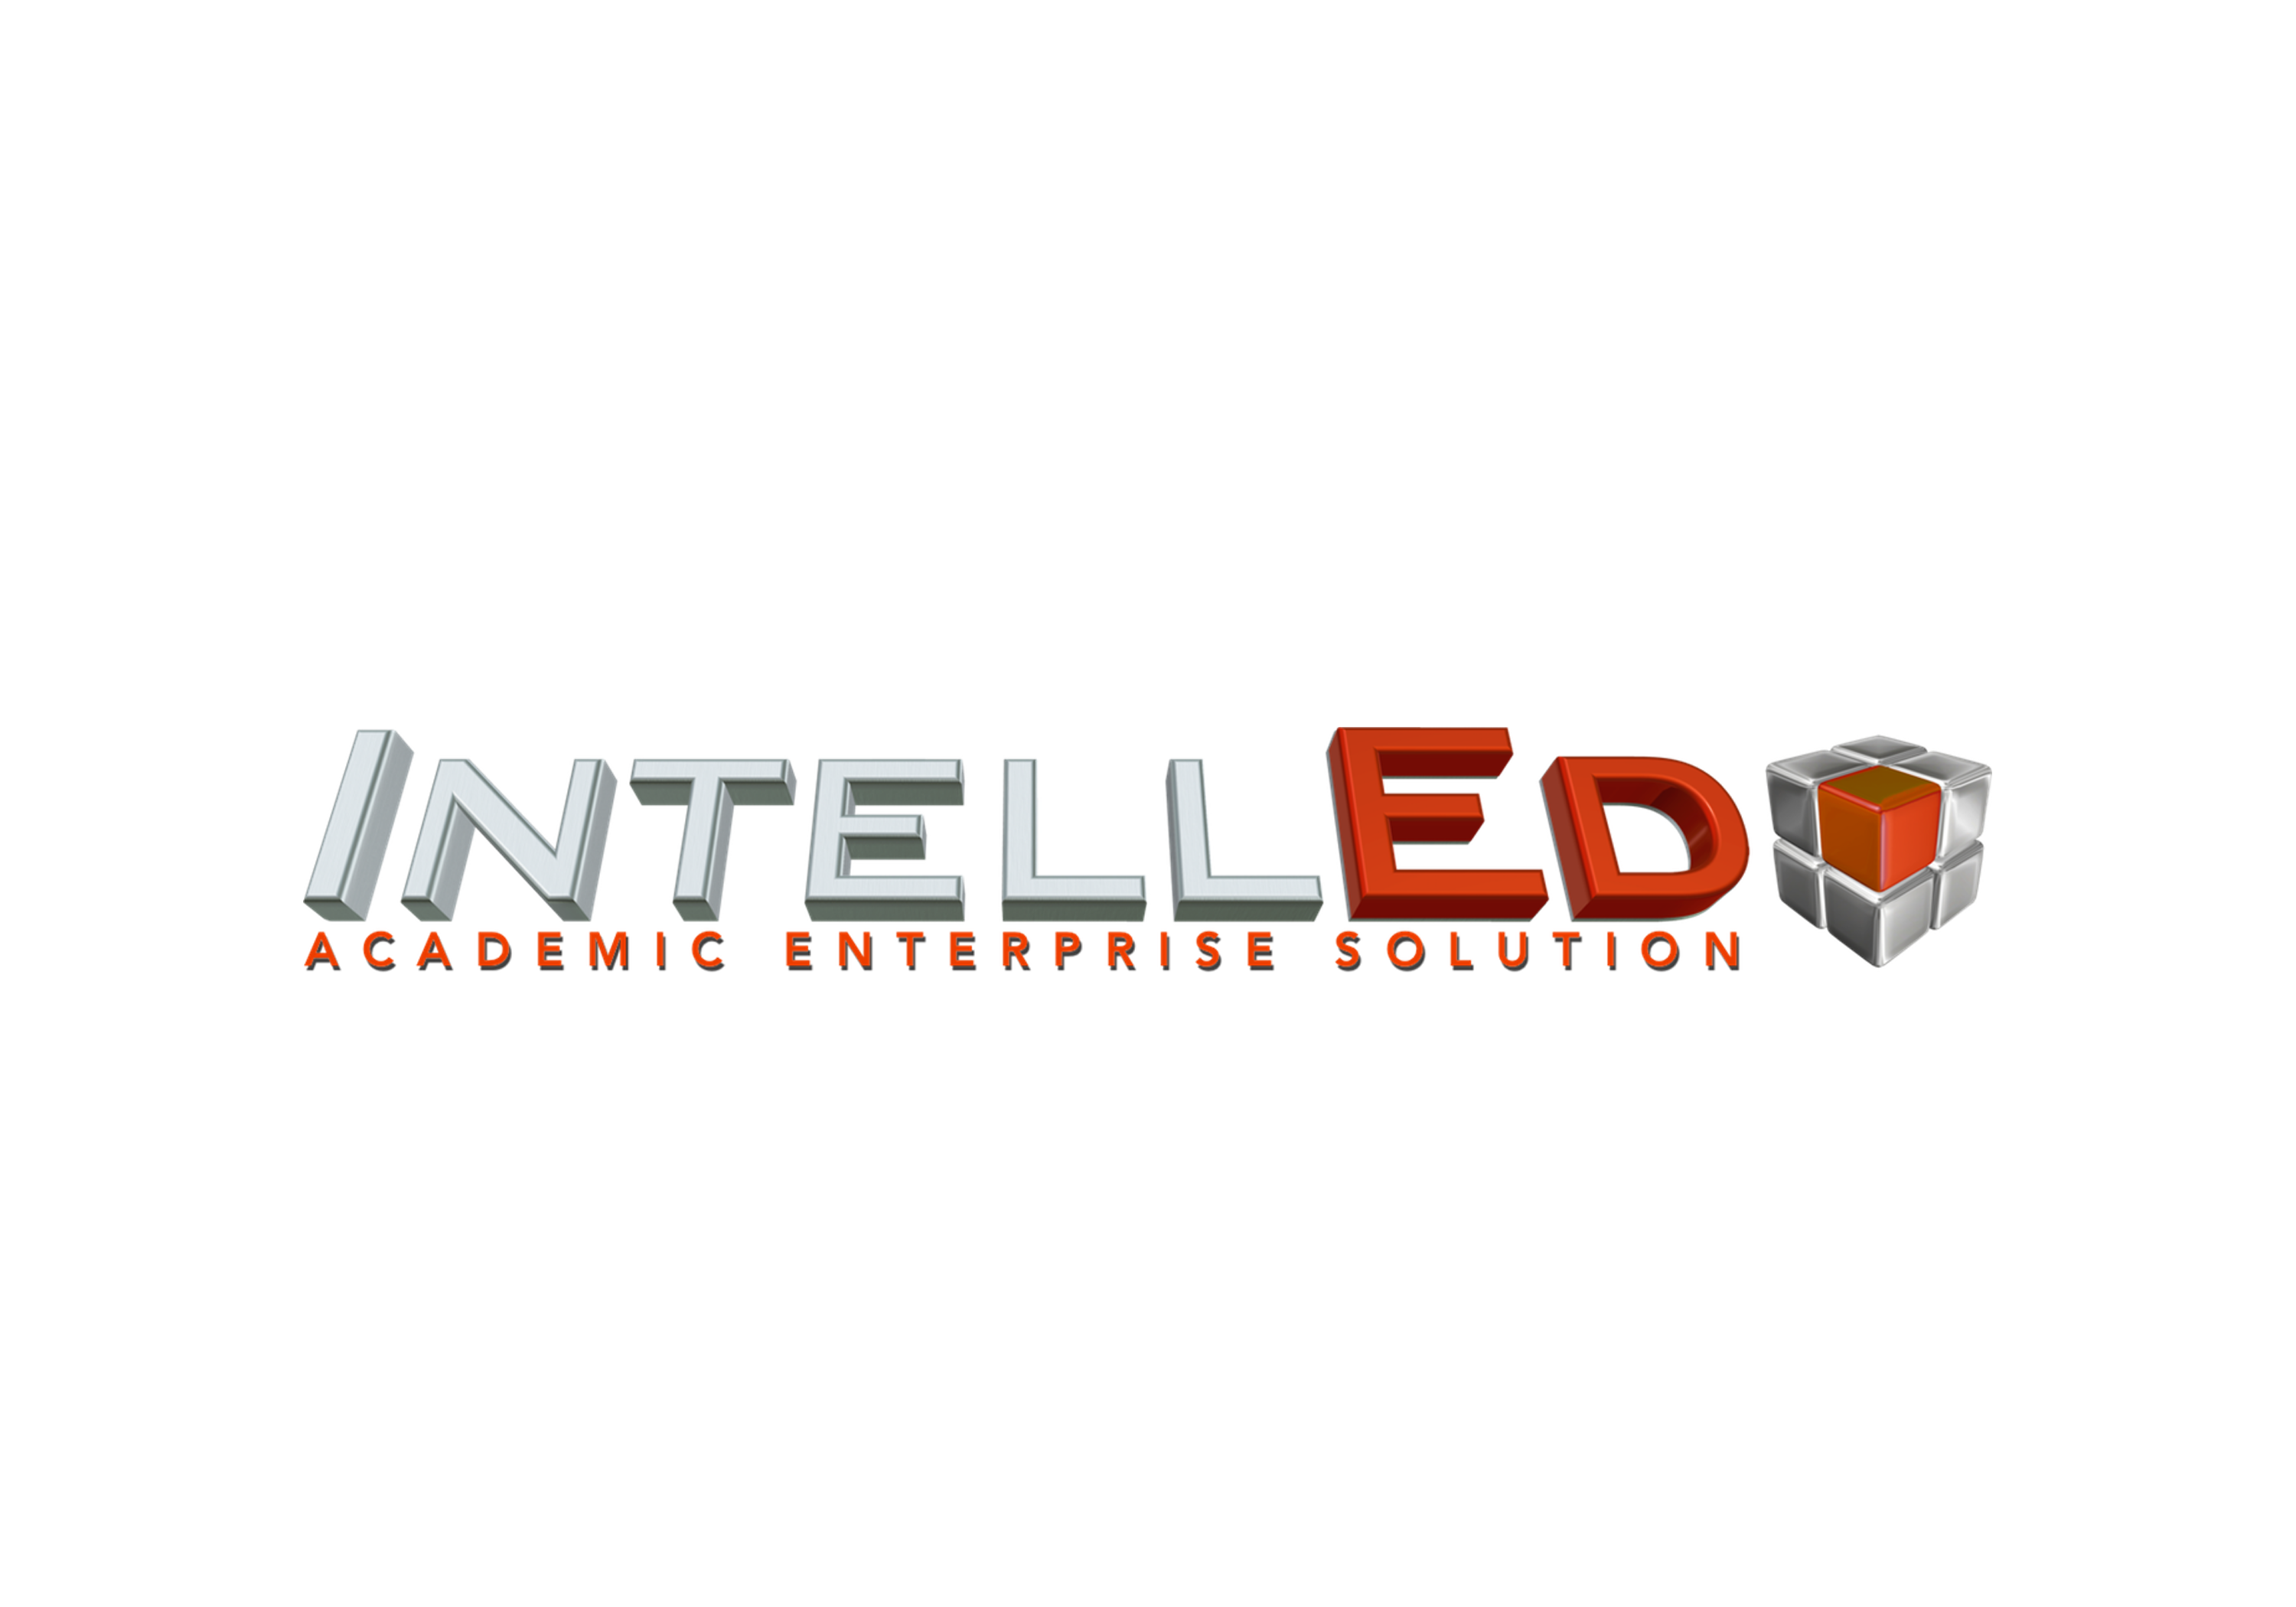 IntellED Product Logo